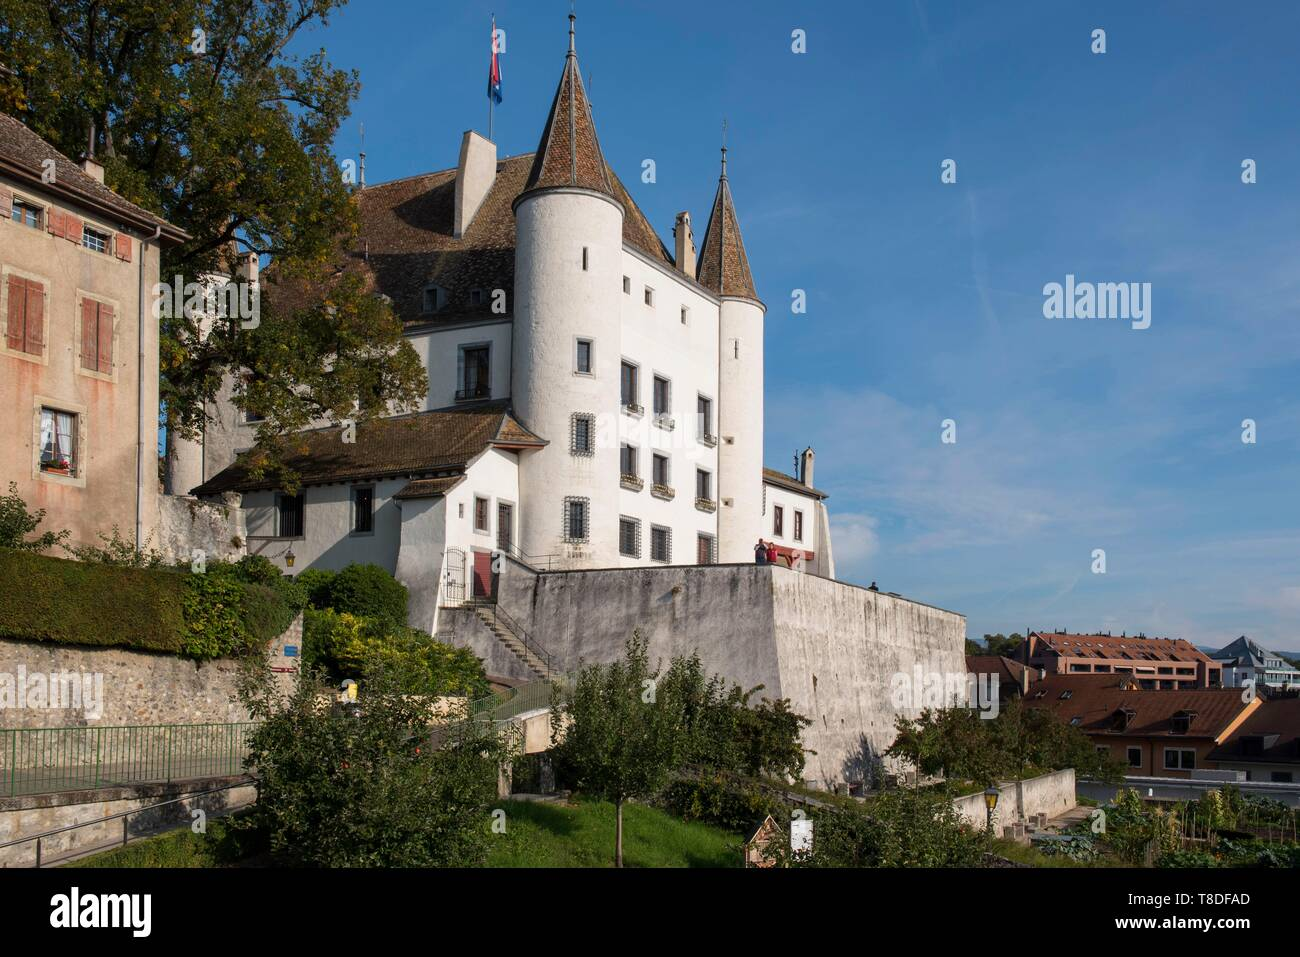 Switzerland, Canton of Vaud, Nyon, the castle and gardens dominate the city - Stock Image